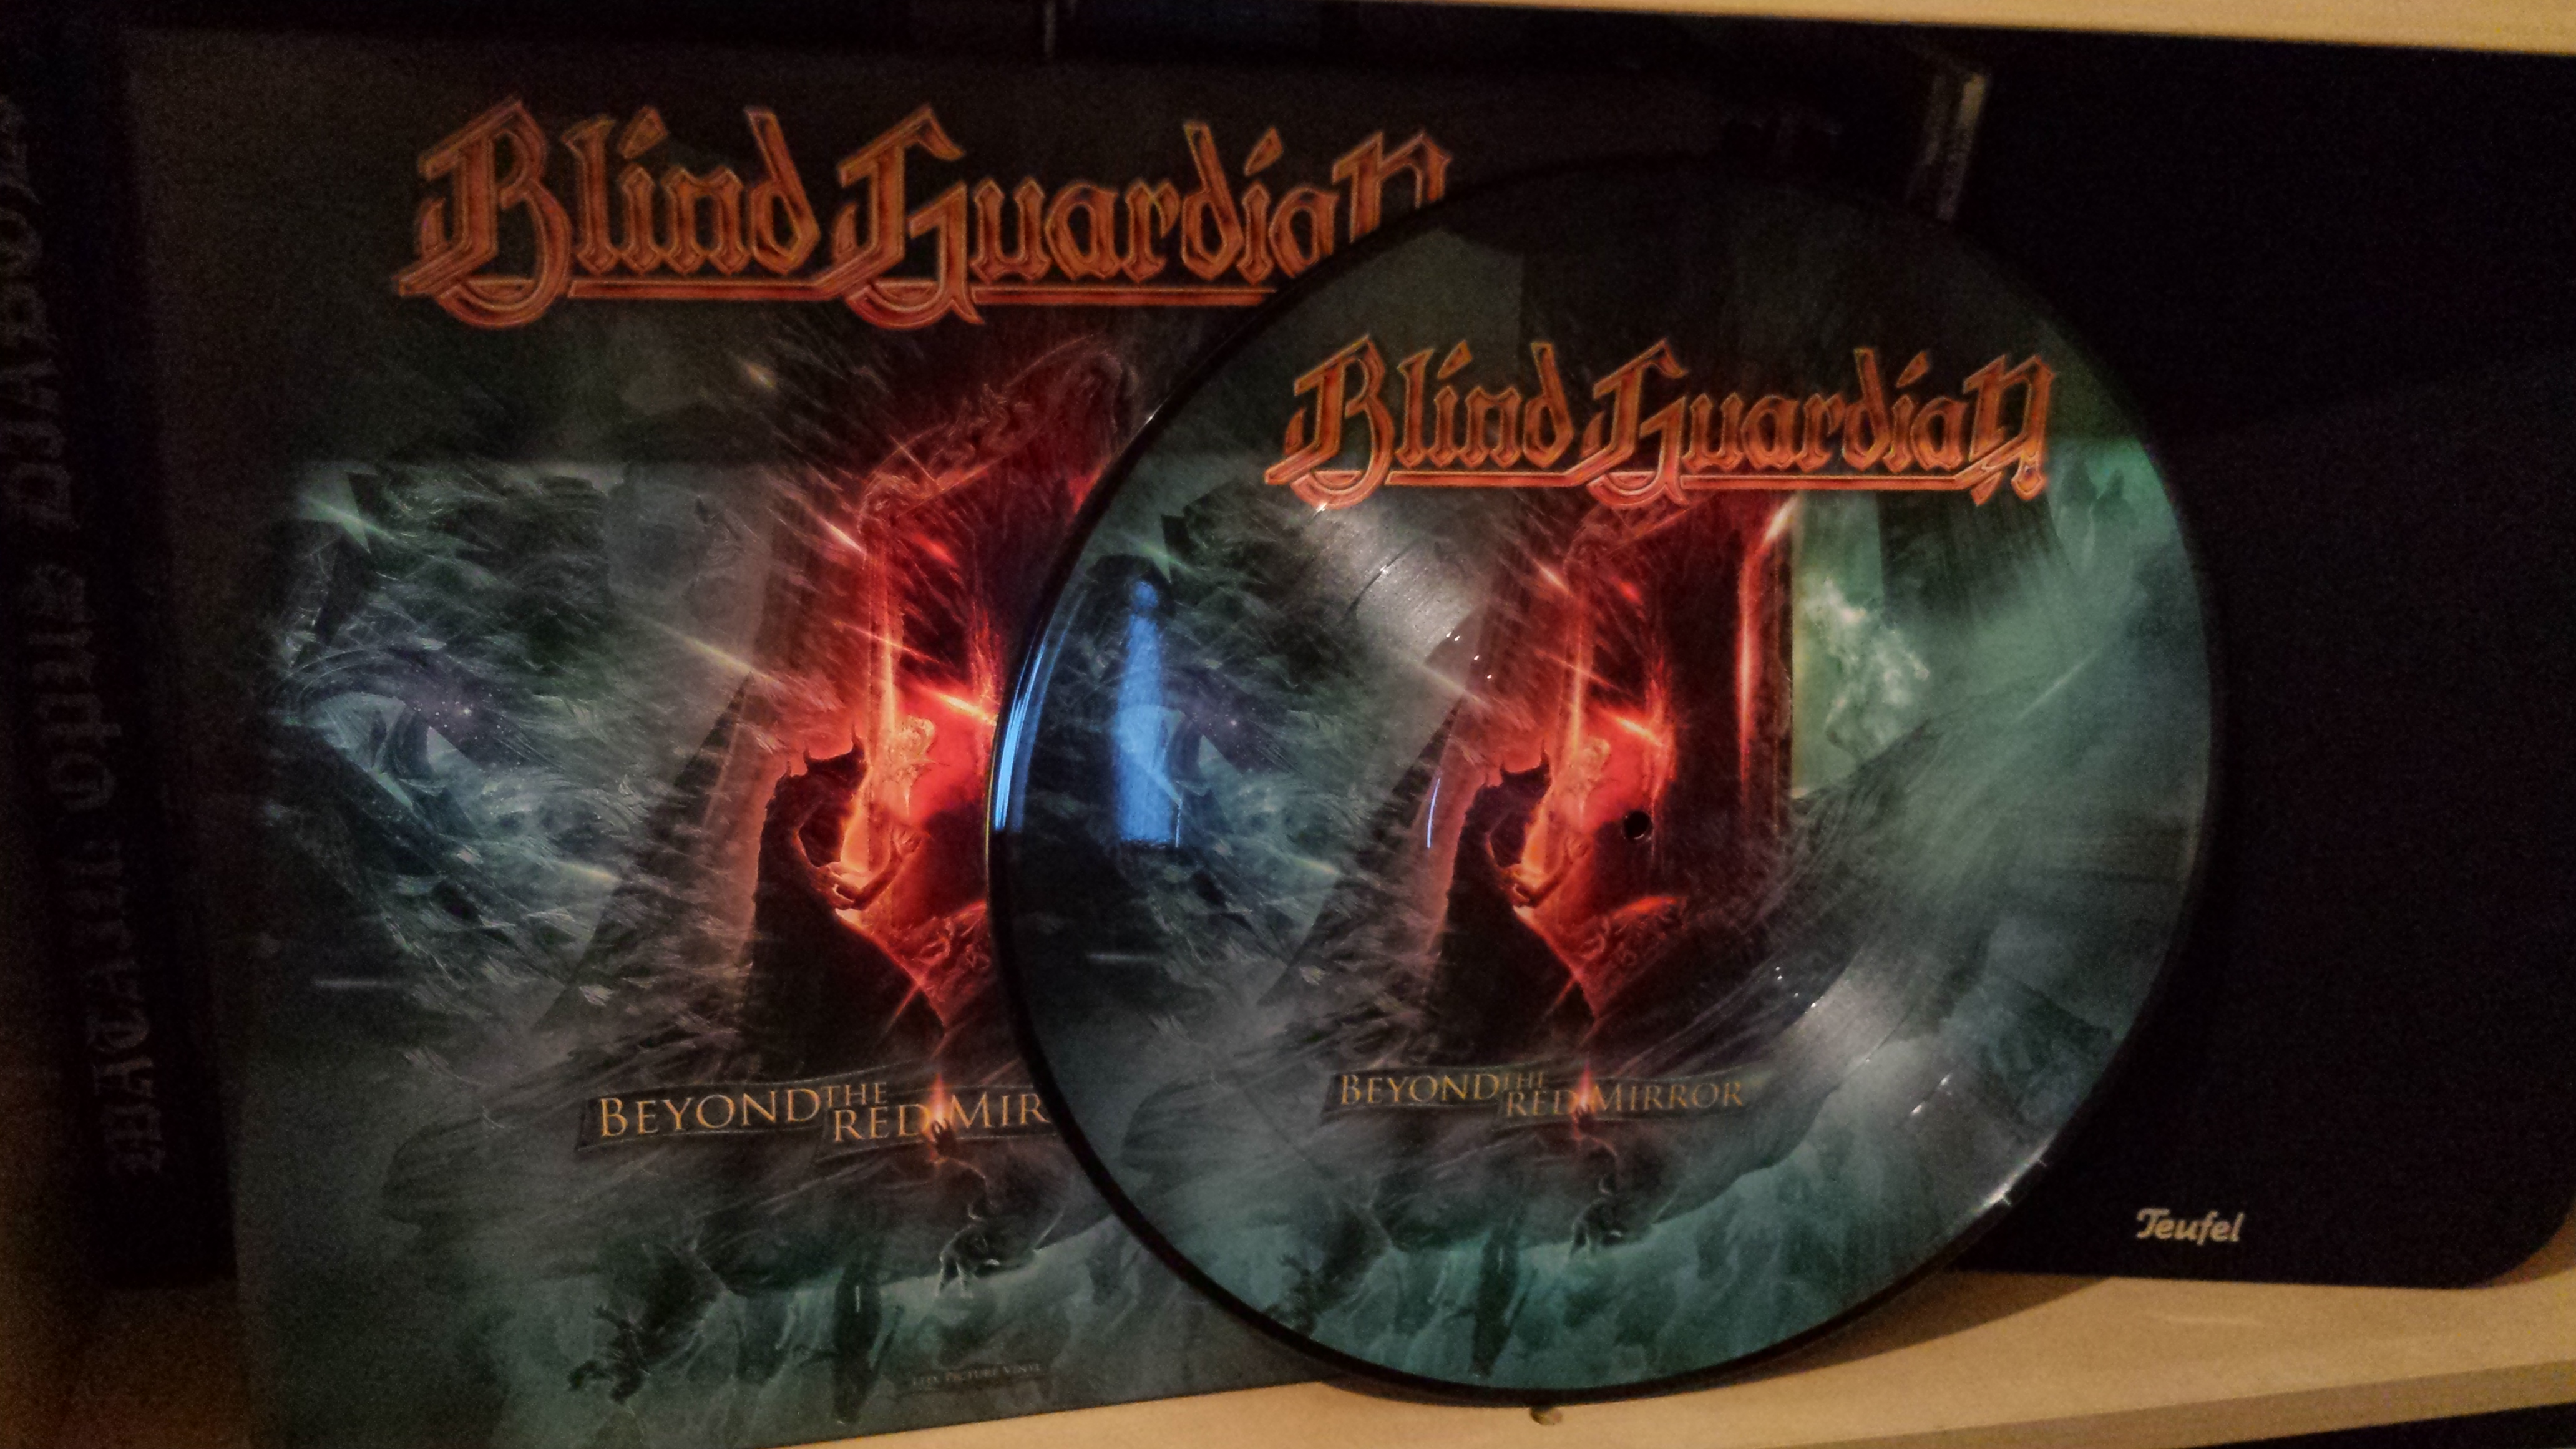 BLIND GUARDIAN-Beyond the red mirror